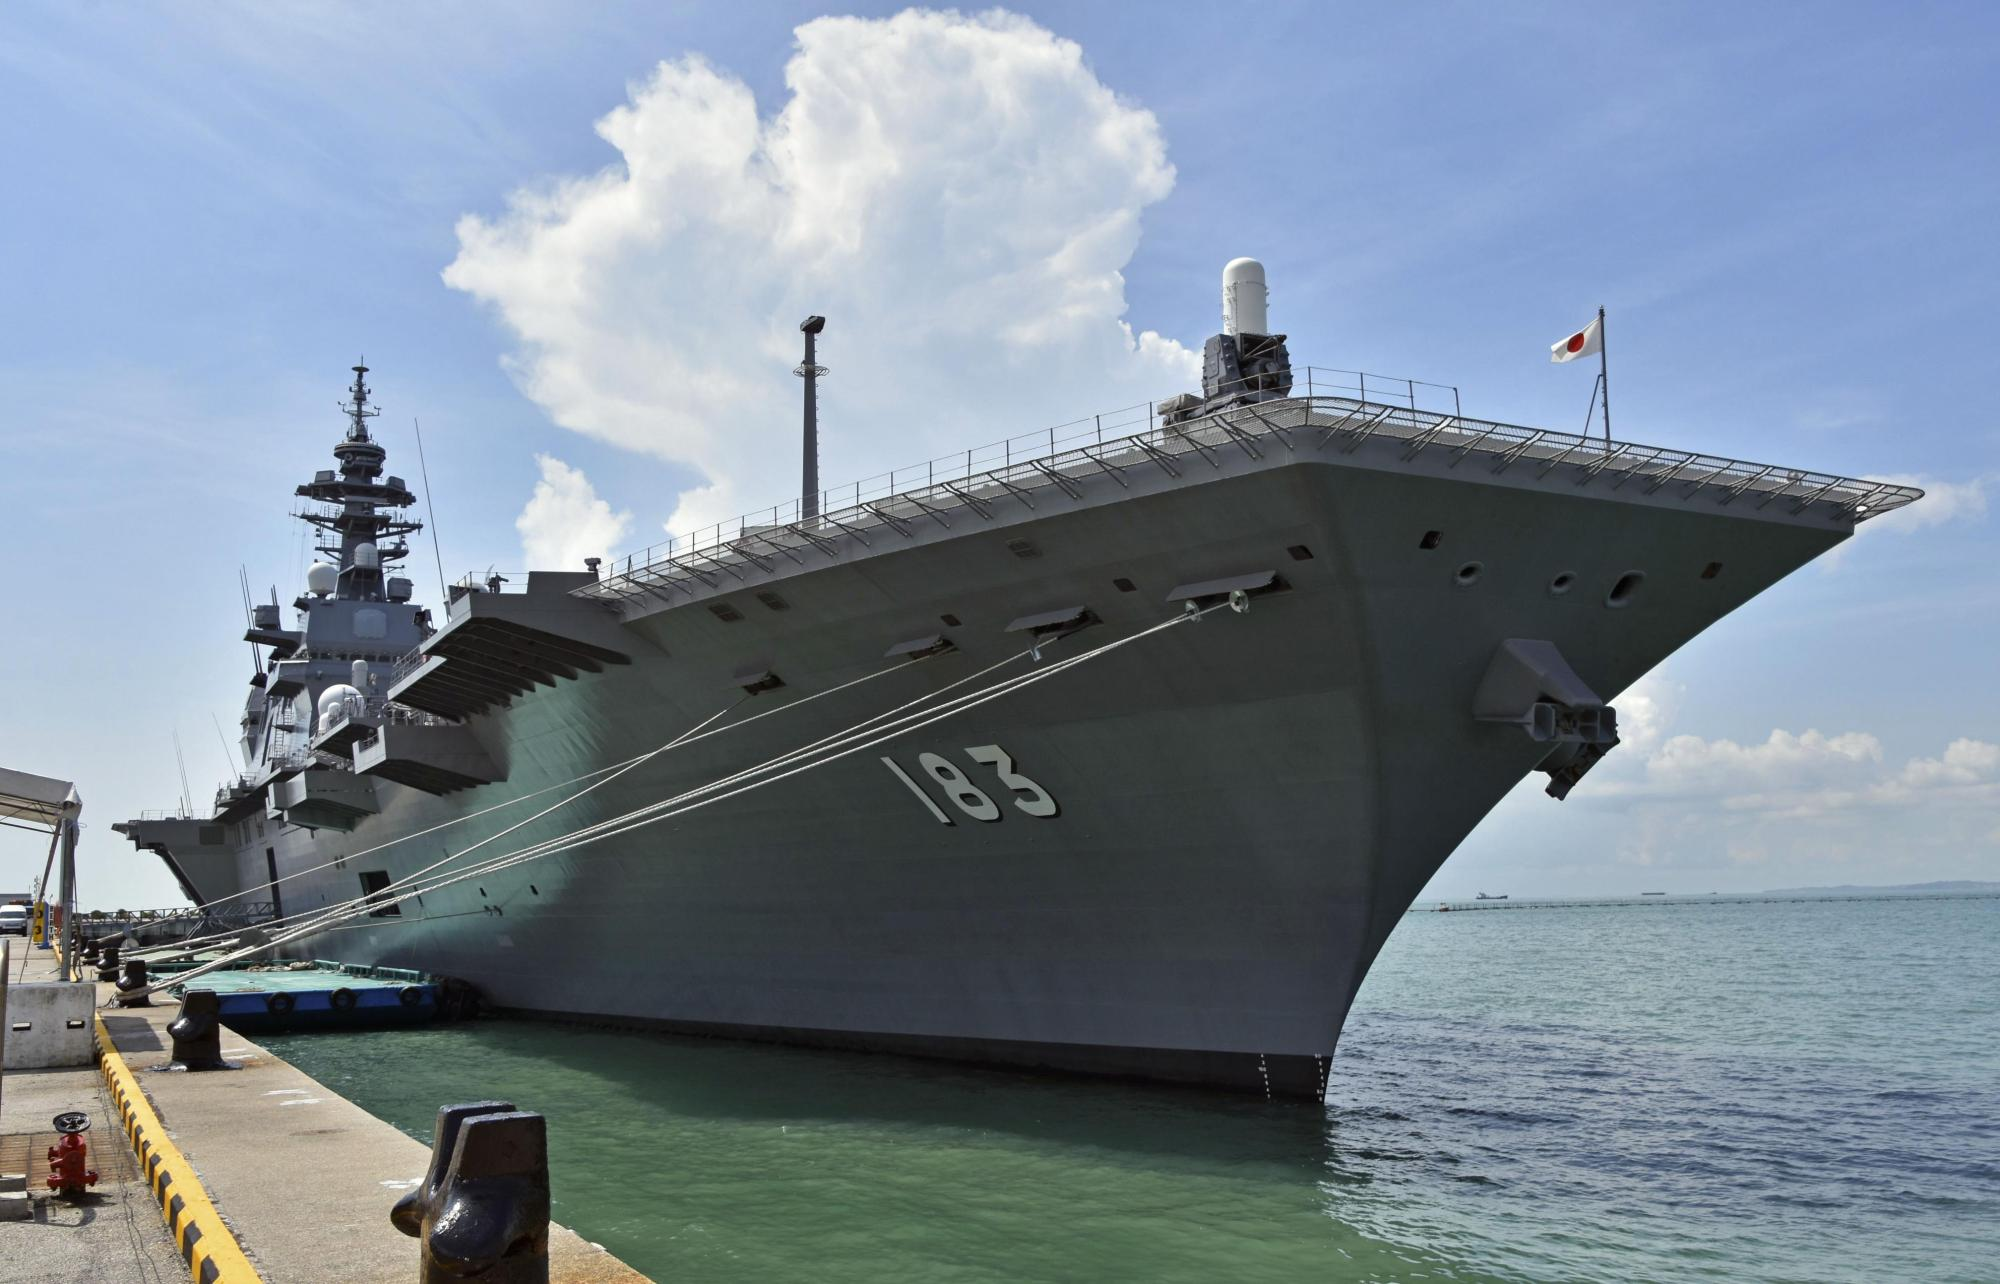 The Maritime Self-Defense Force's helicopter carrier Izumo is anchored at a port in Singapore on May 13 ahead of joint drills with France, Australia and the United States in the Indian Ocean that began Sunday. | KYODO